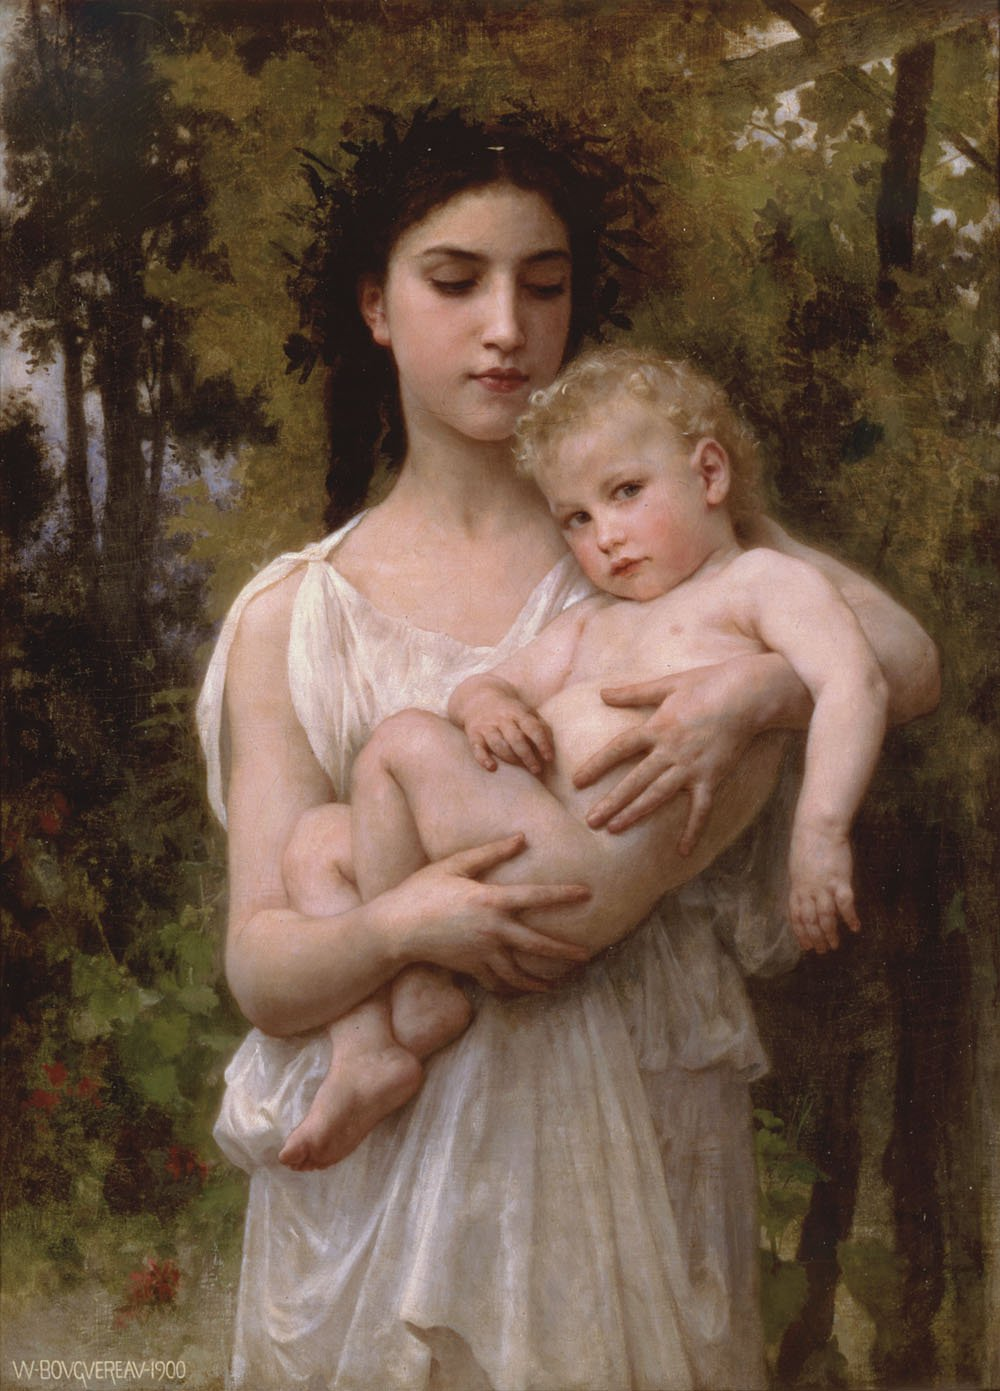 Le Jeune Frere 1900 | William Bouguereau | oil painting